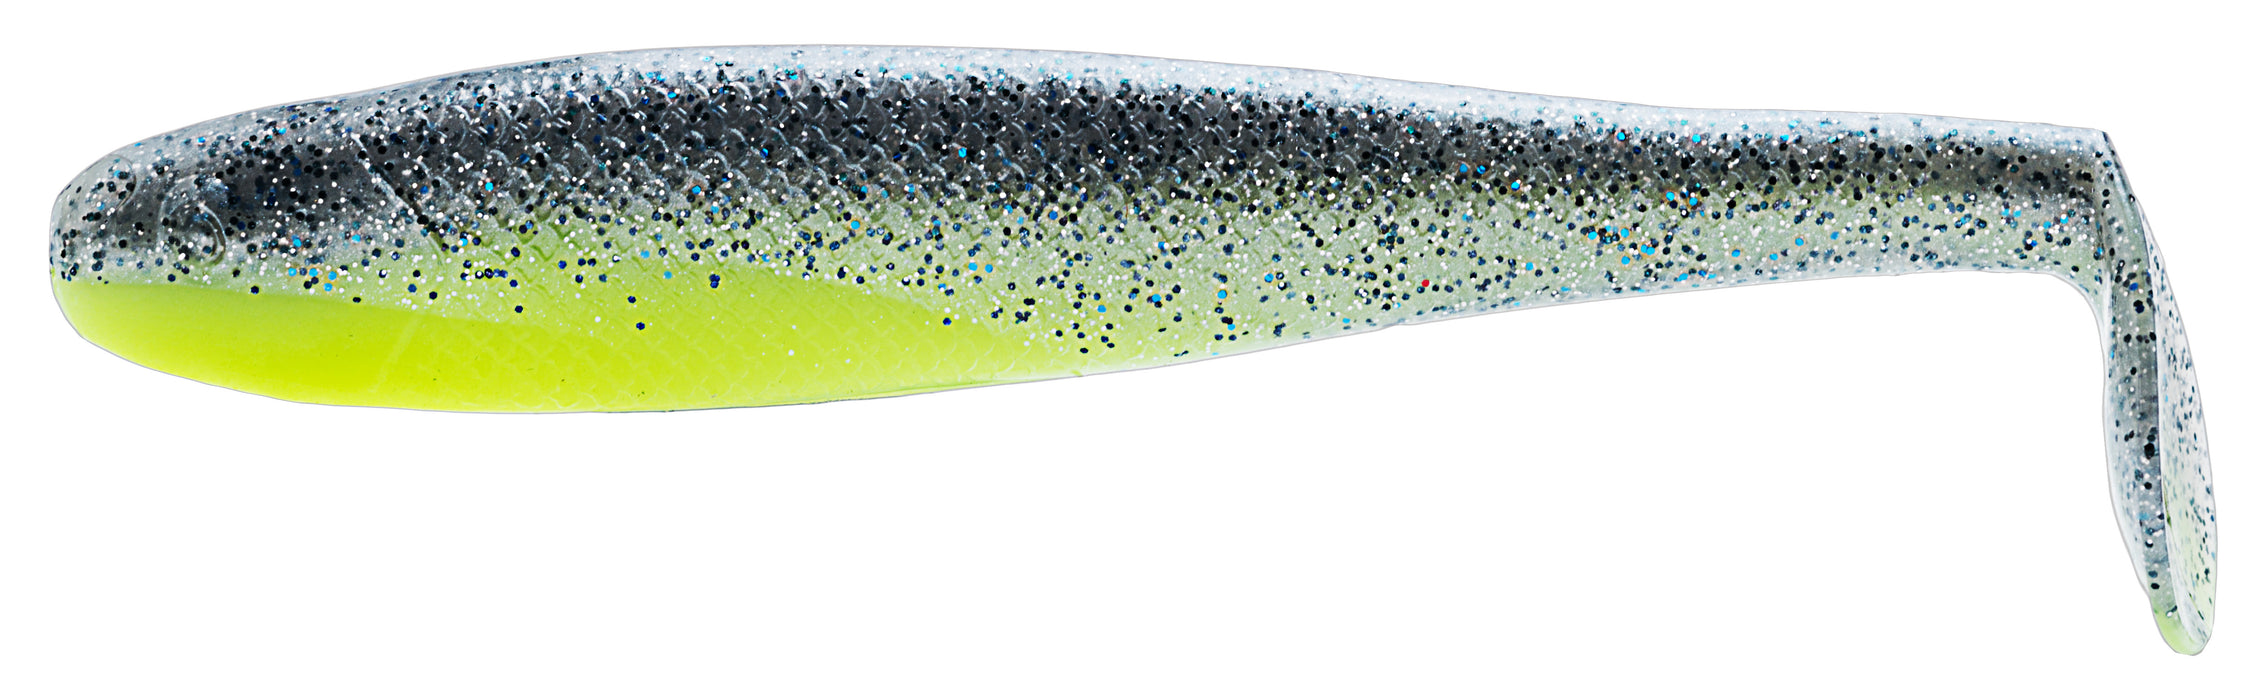 Z-Man SwimmerZ 6 inch Paddle Tail Swimbait 3 pack